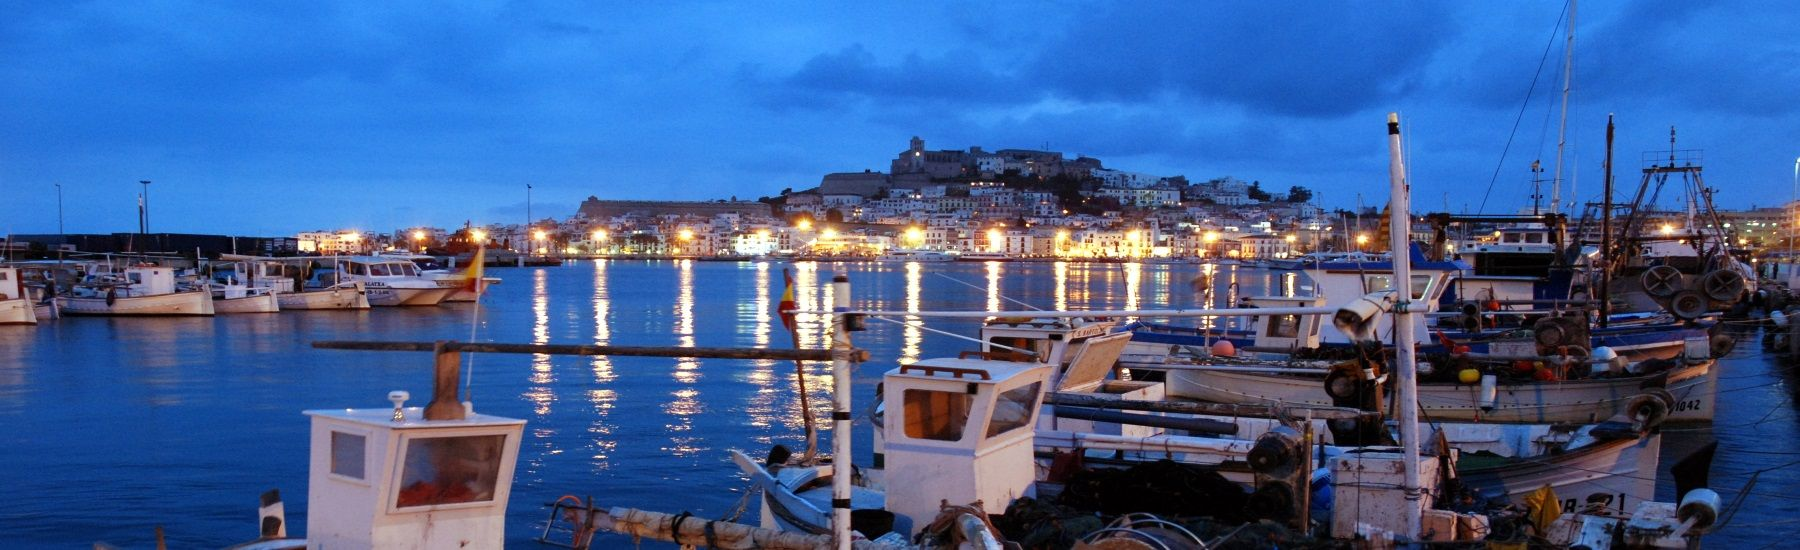 The best holiday excursions in Ibiza - Ibiza at night